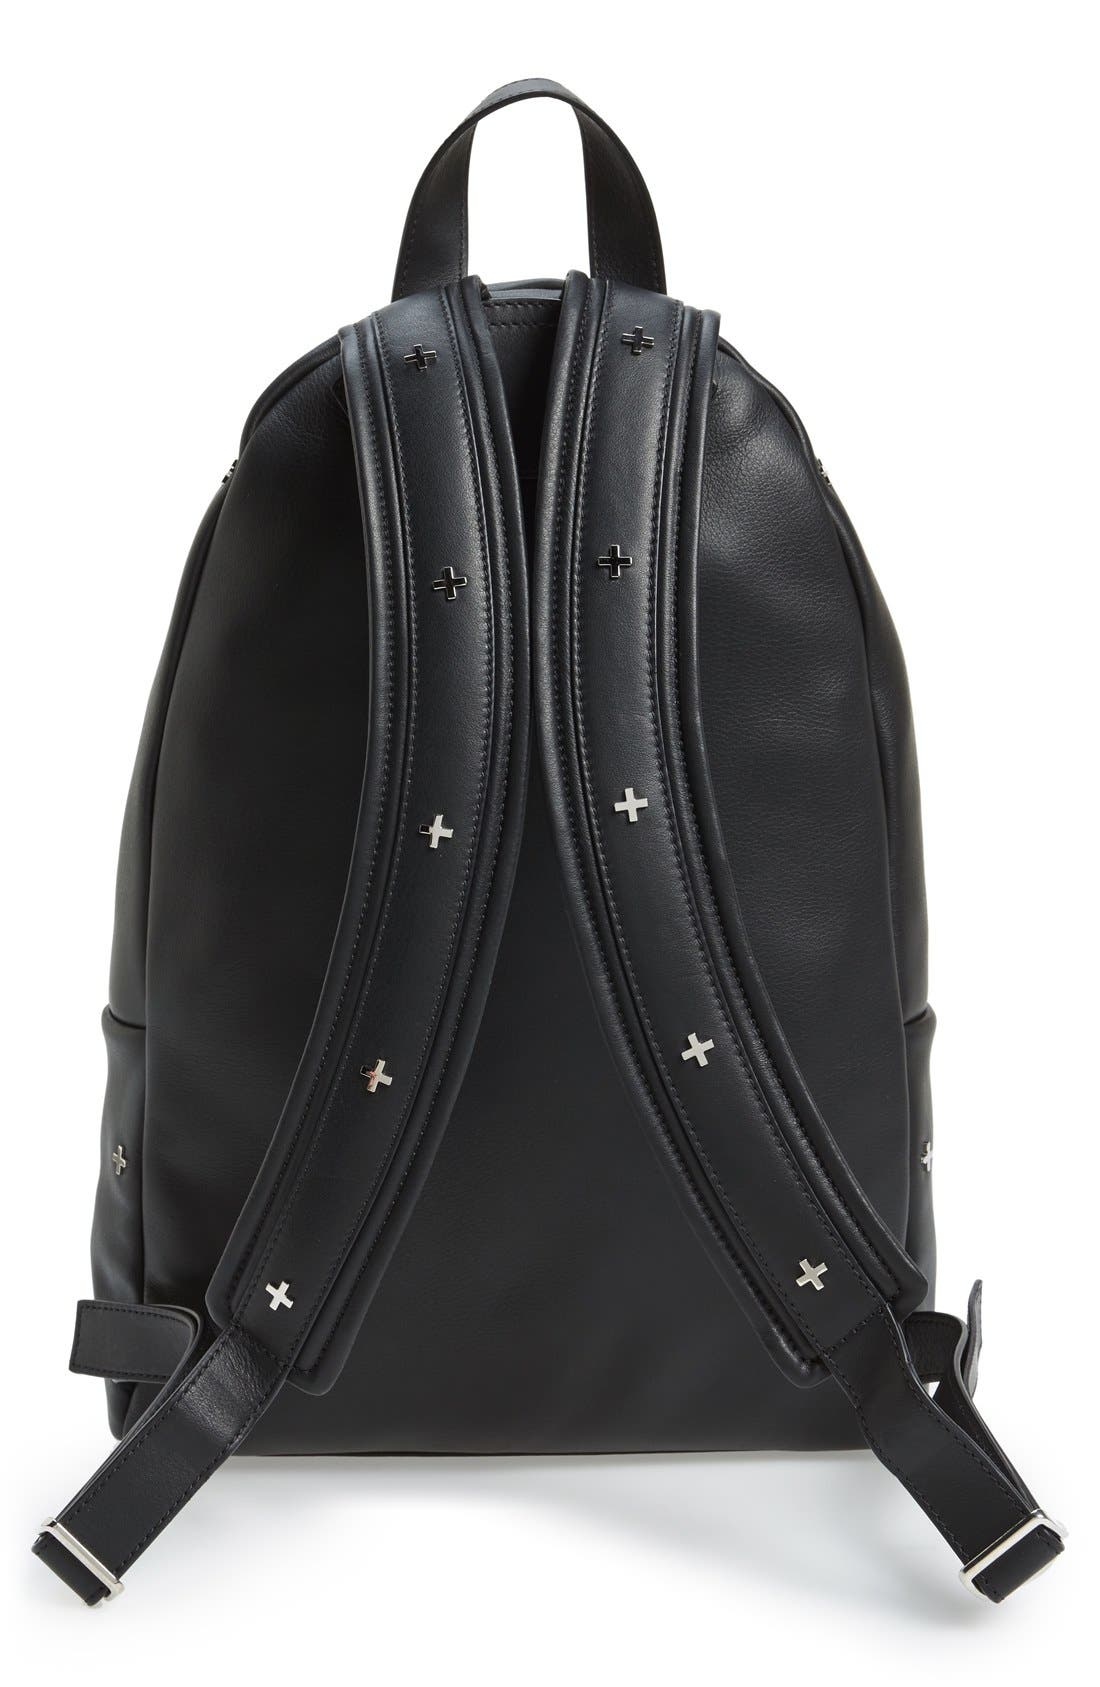 GIVENCHY,                             Metal Cross Embellished Calfskin Leather Backpack,                             Alternate thumbnail 3, color,                             001